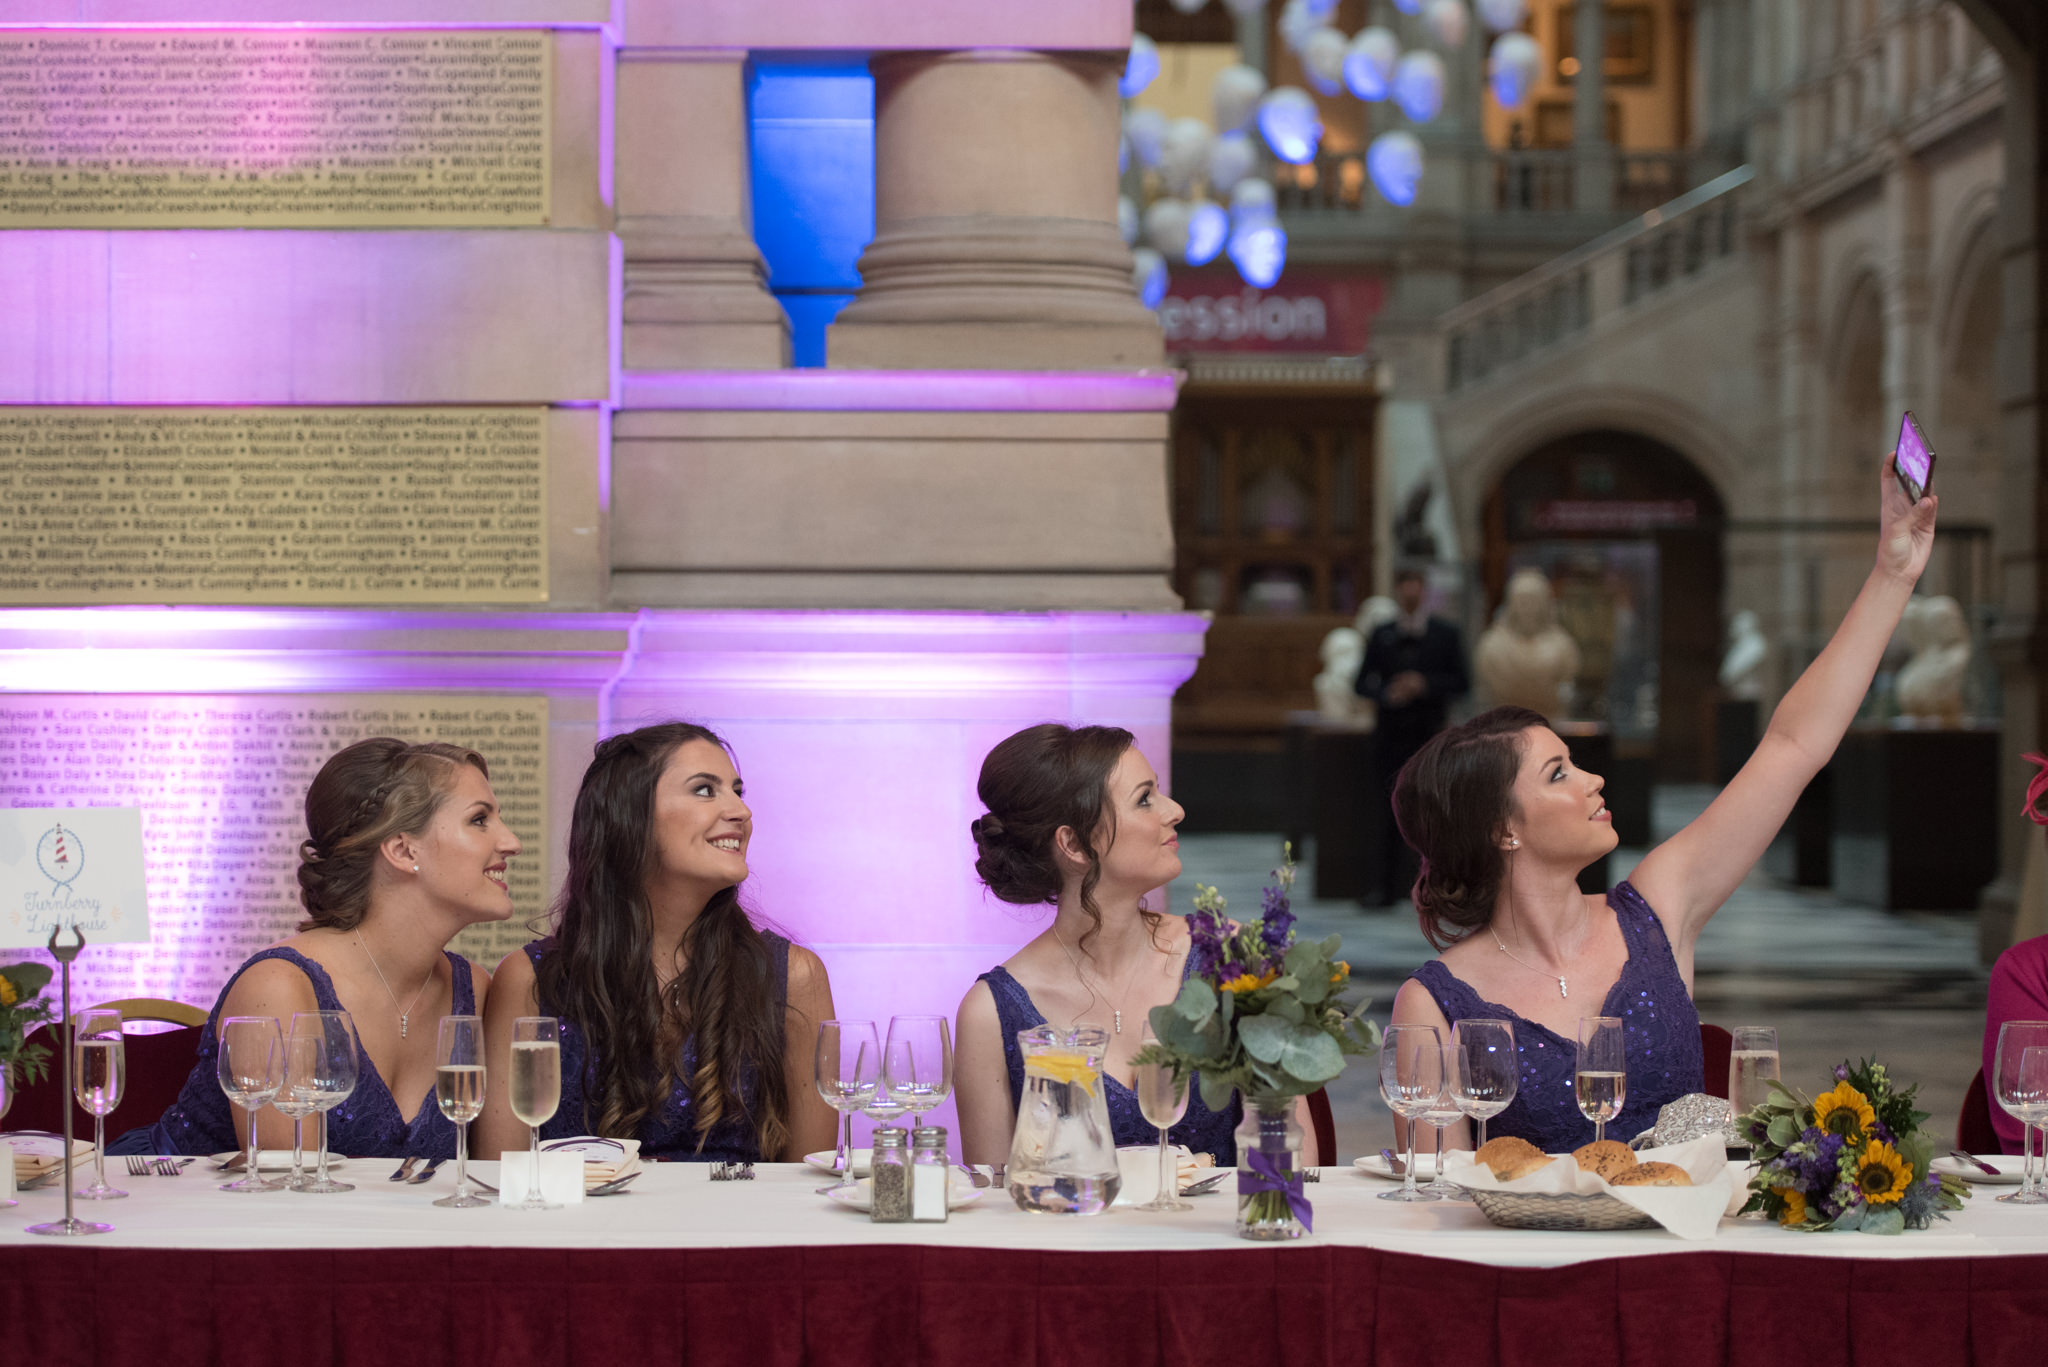 Carrie and Jonathan's wedding - Glasgow University Chapel and Kelvingrove Art Gallery - 29 July 2017 - © Julie Broadfoot - www.photographybyjuliebee.co.uk